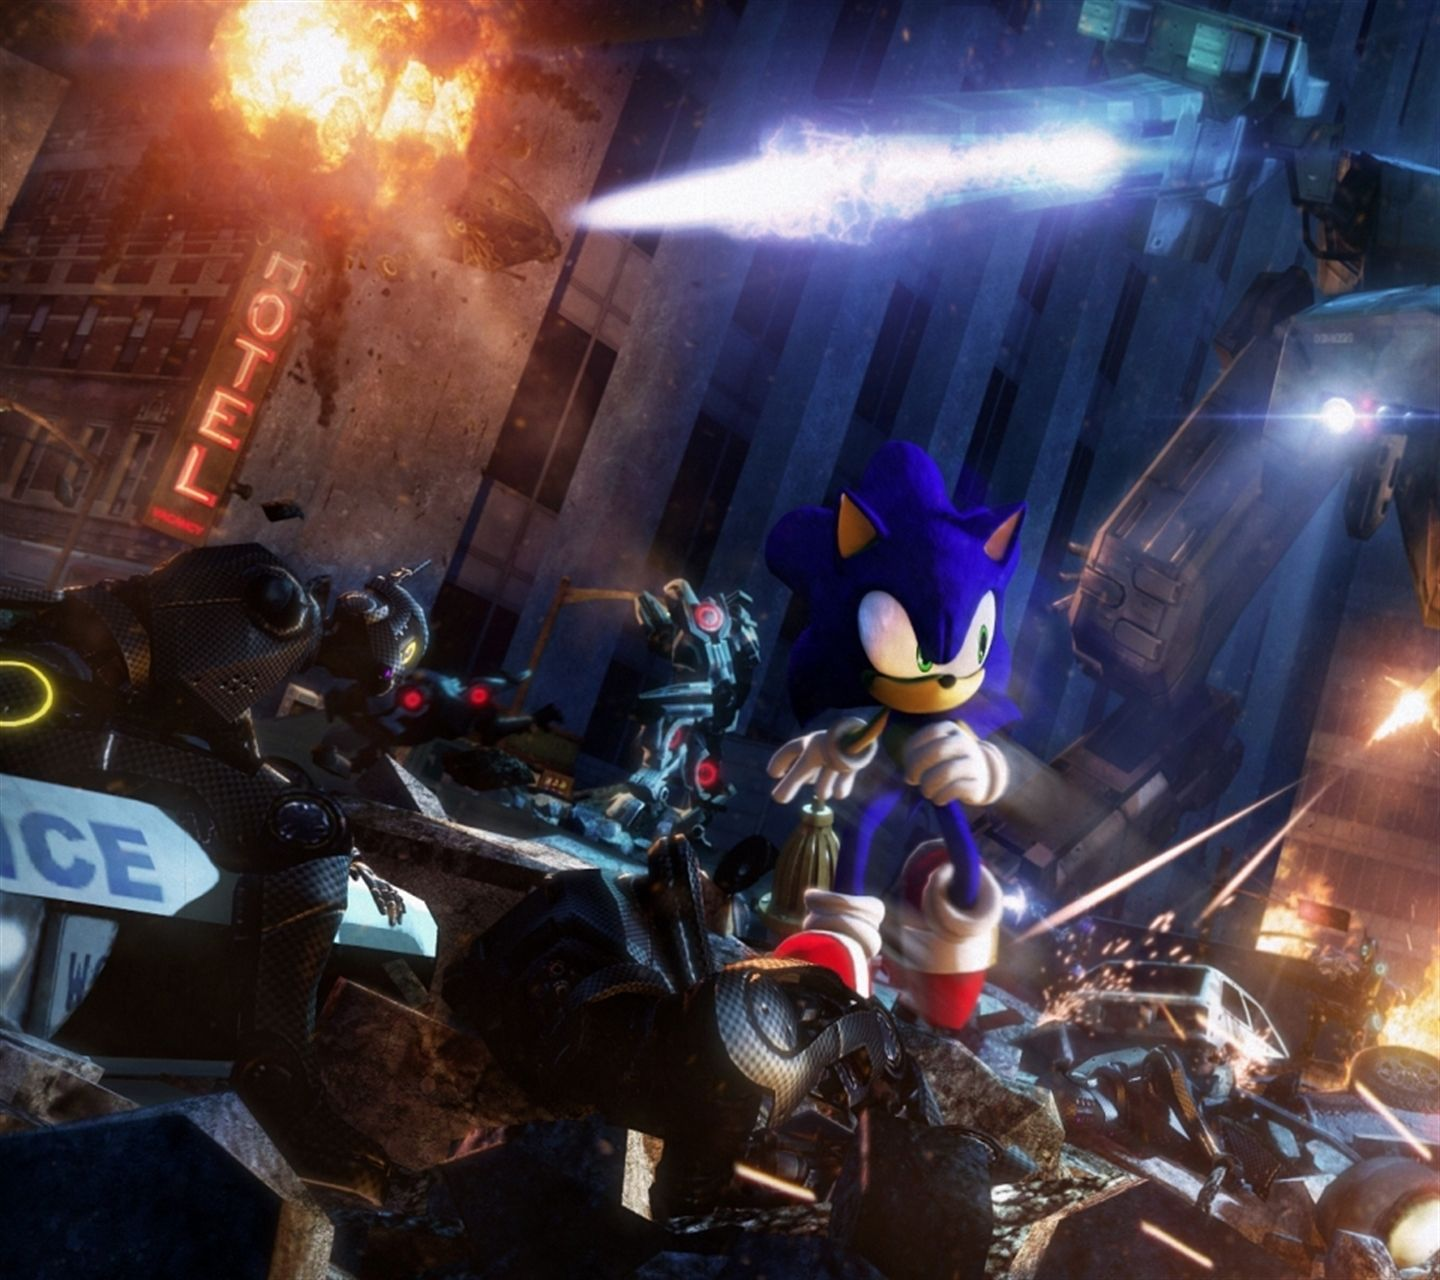 Download Sonic Gmod Doomsday Hd Wallpaper1440x12801280x1440freehotmobile Phone